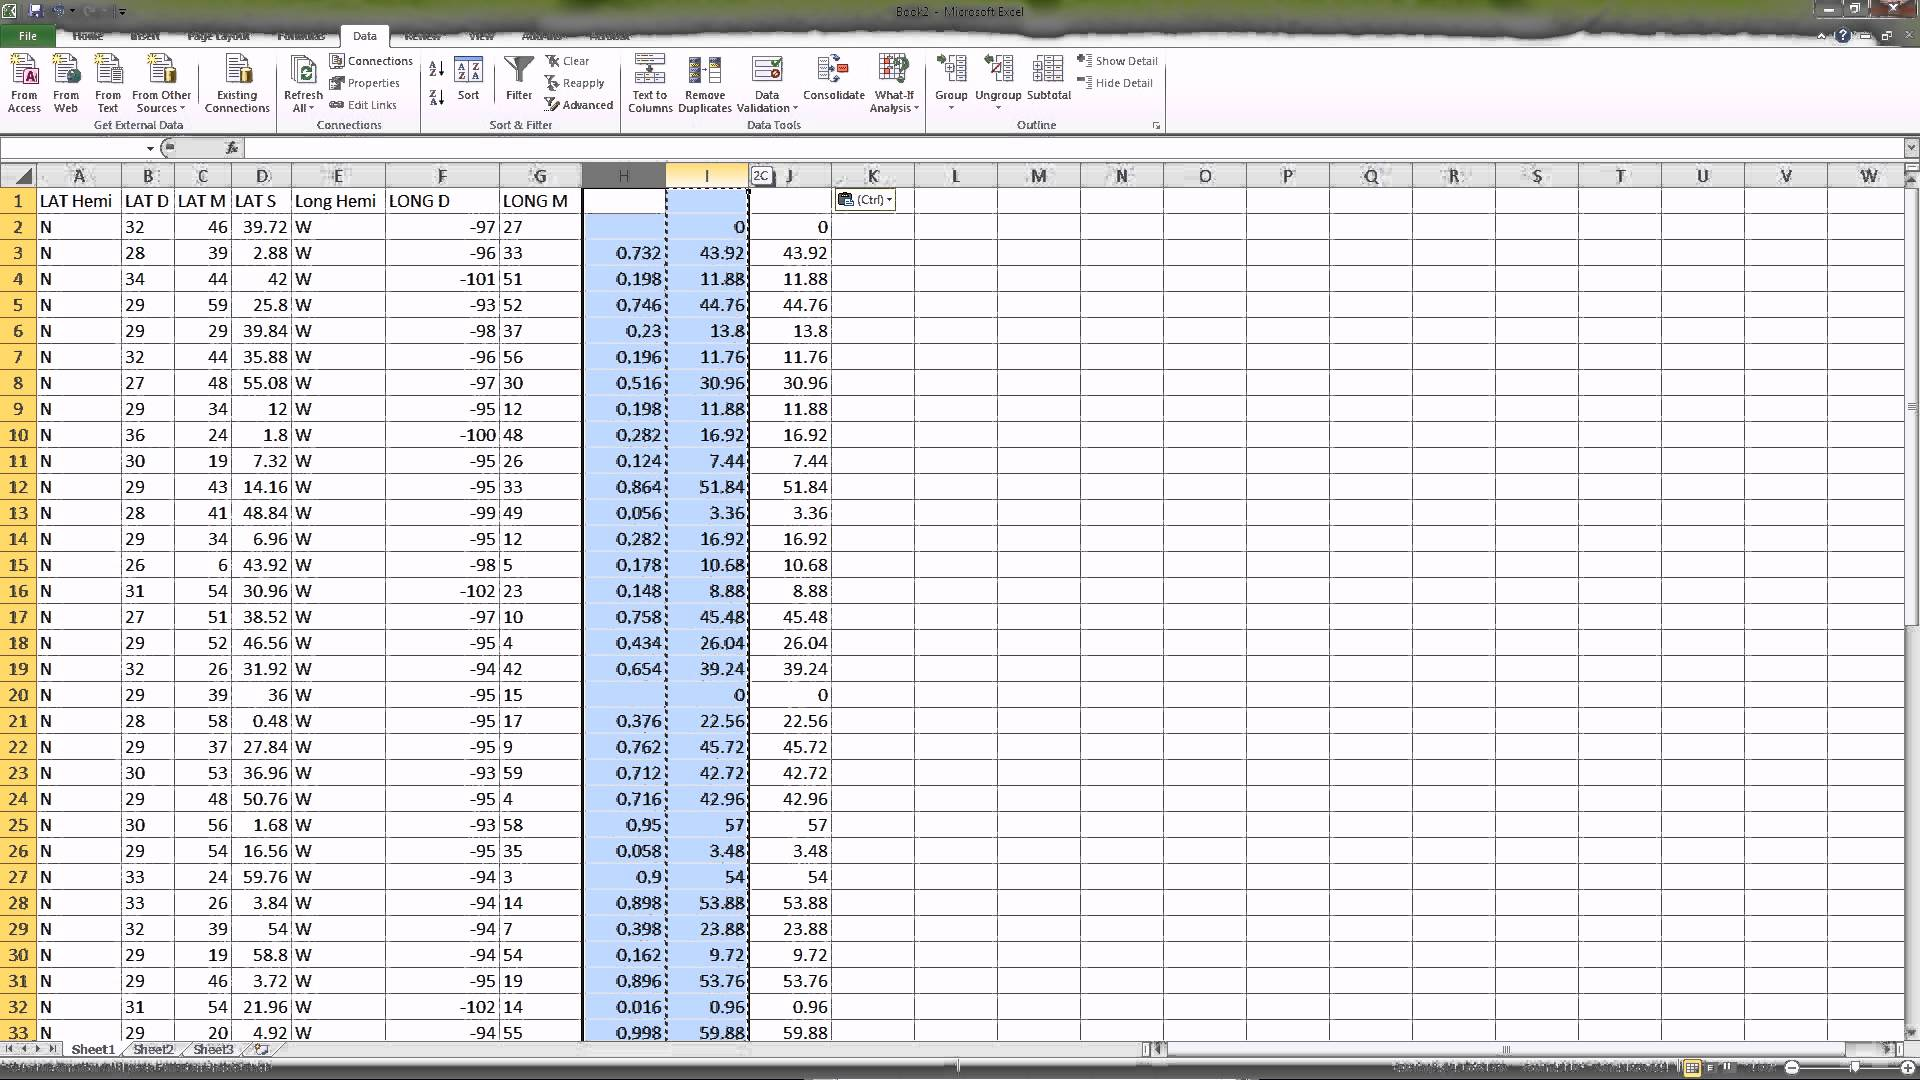 how to add minutes and second in excel